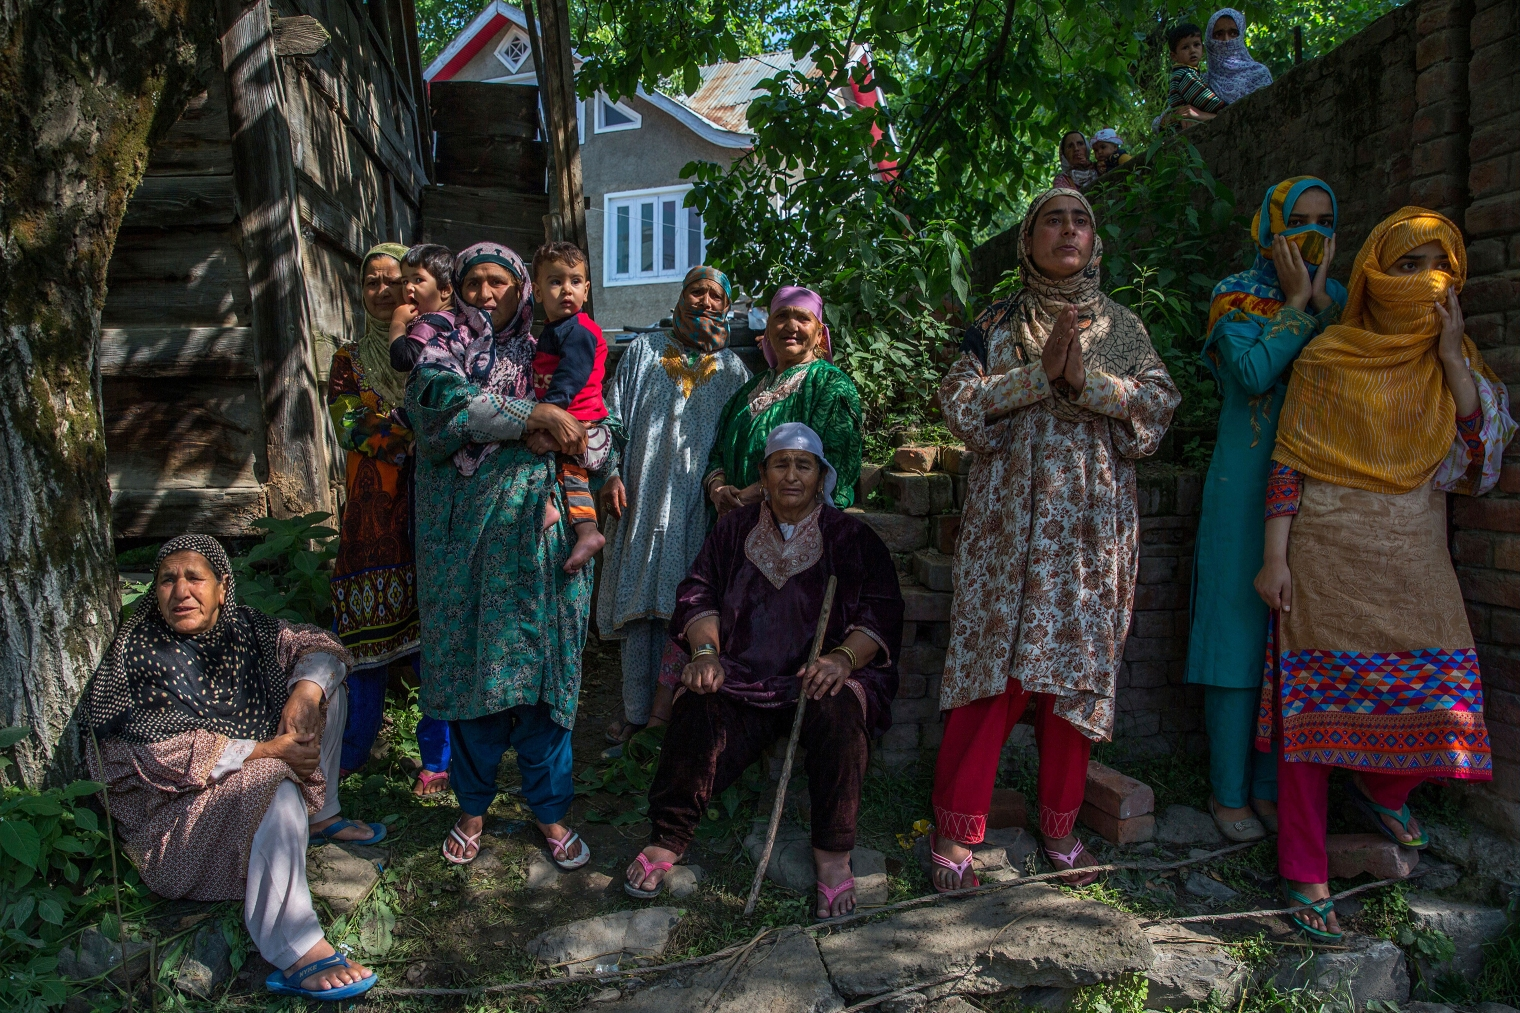 Women grieve as they watch the funeral procession of rebel leader Sabzar Ahmed Bhat in Retsuna, 45 Kilometers south of Srinagar on May 28, 2017. Thousands of people assembled in southern Tral area to take part in the funeral of the rebel leader Sabzar Ahmed Bhat, chanting slogans calling for Kashmir's freedom from Indian rule.